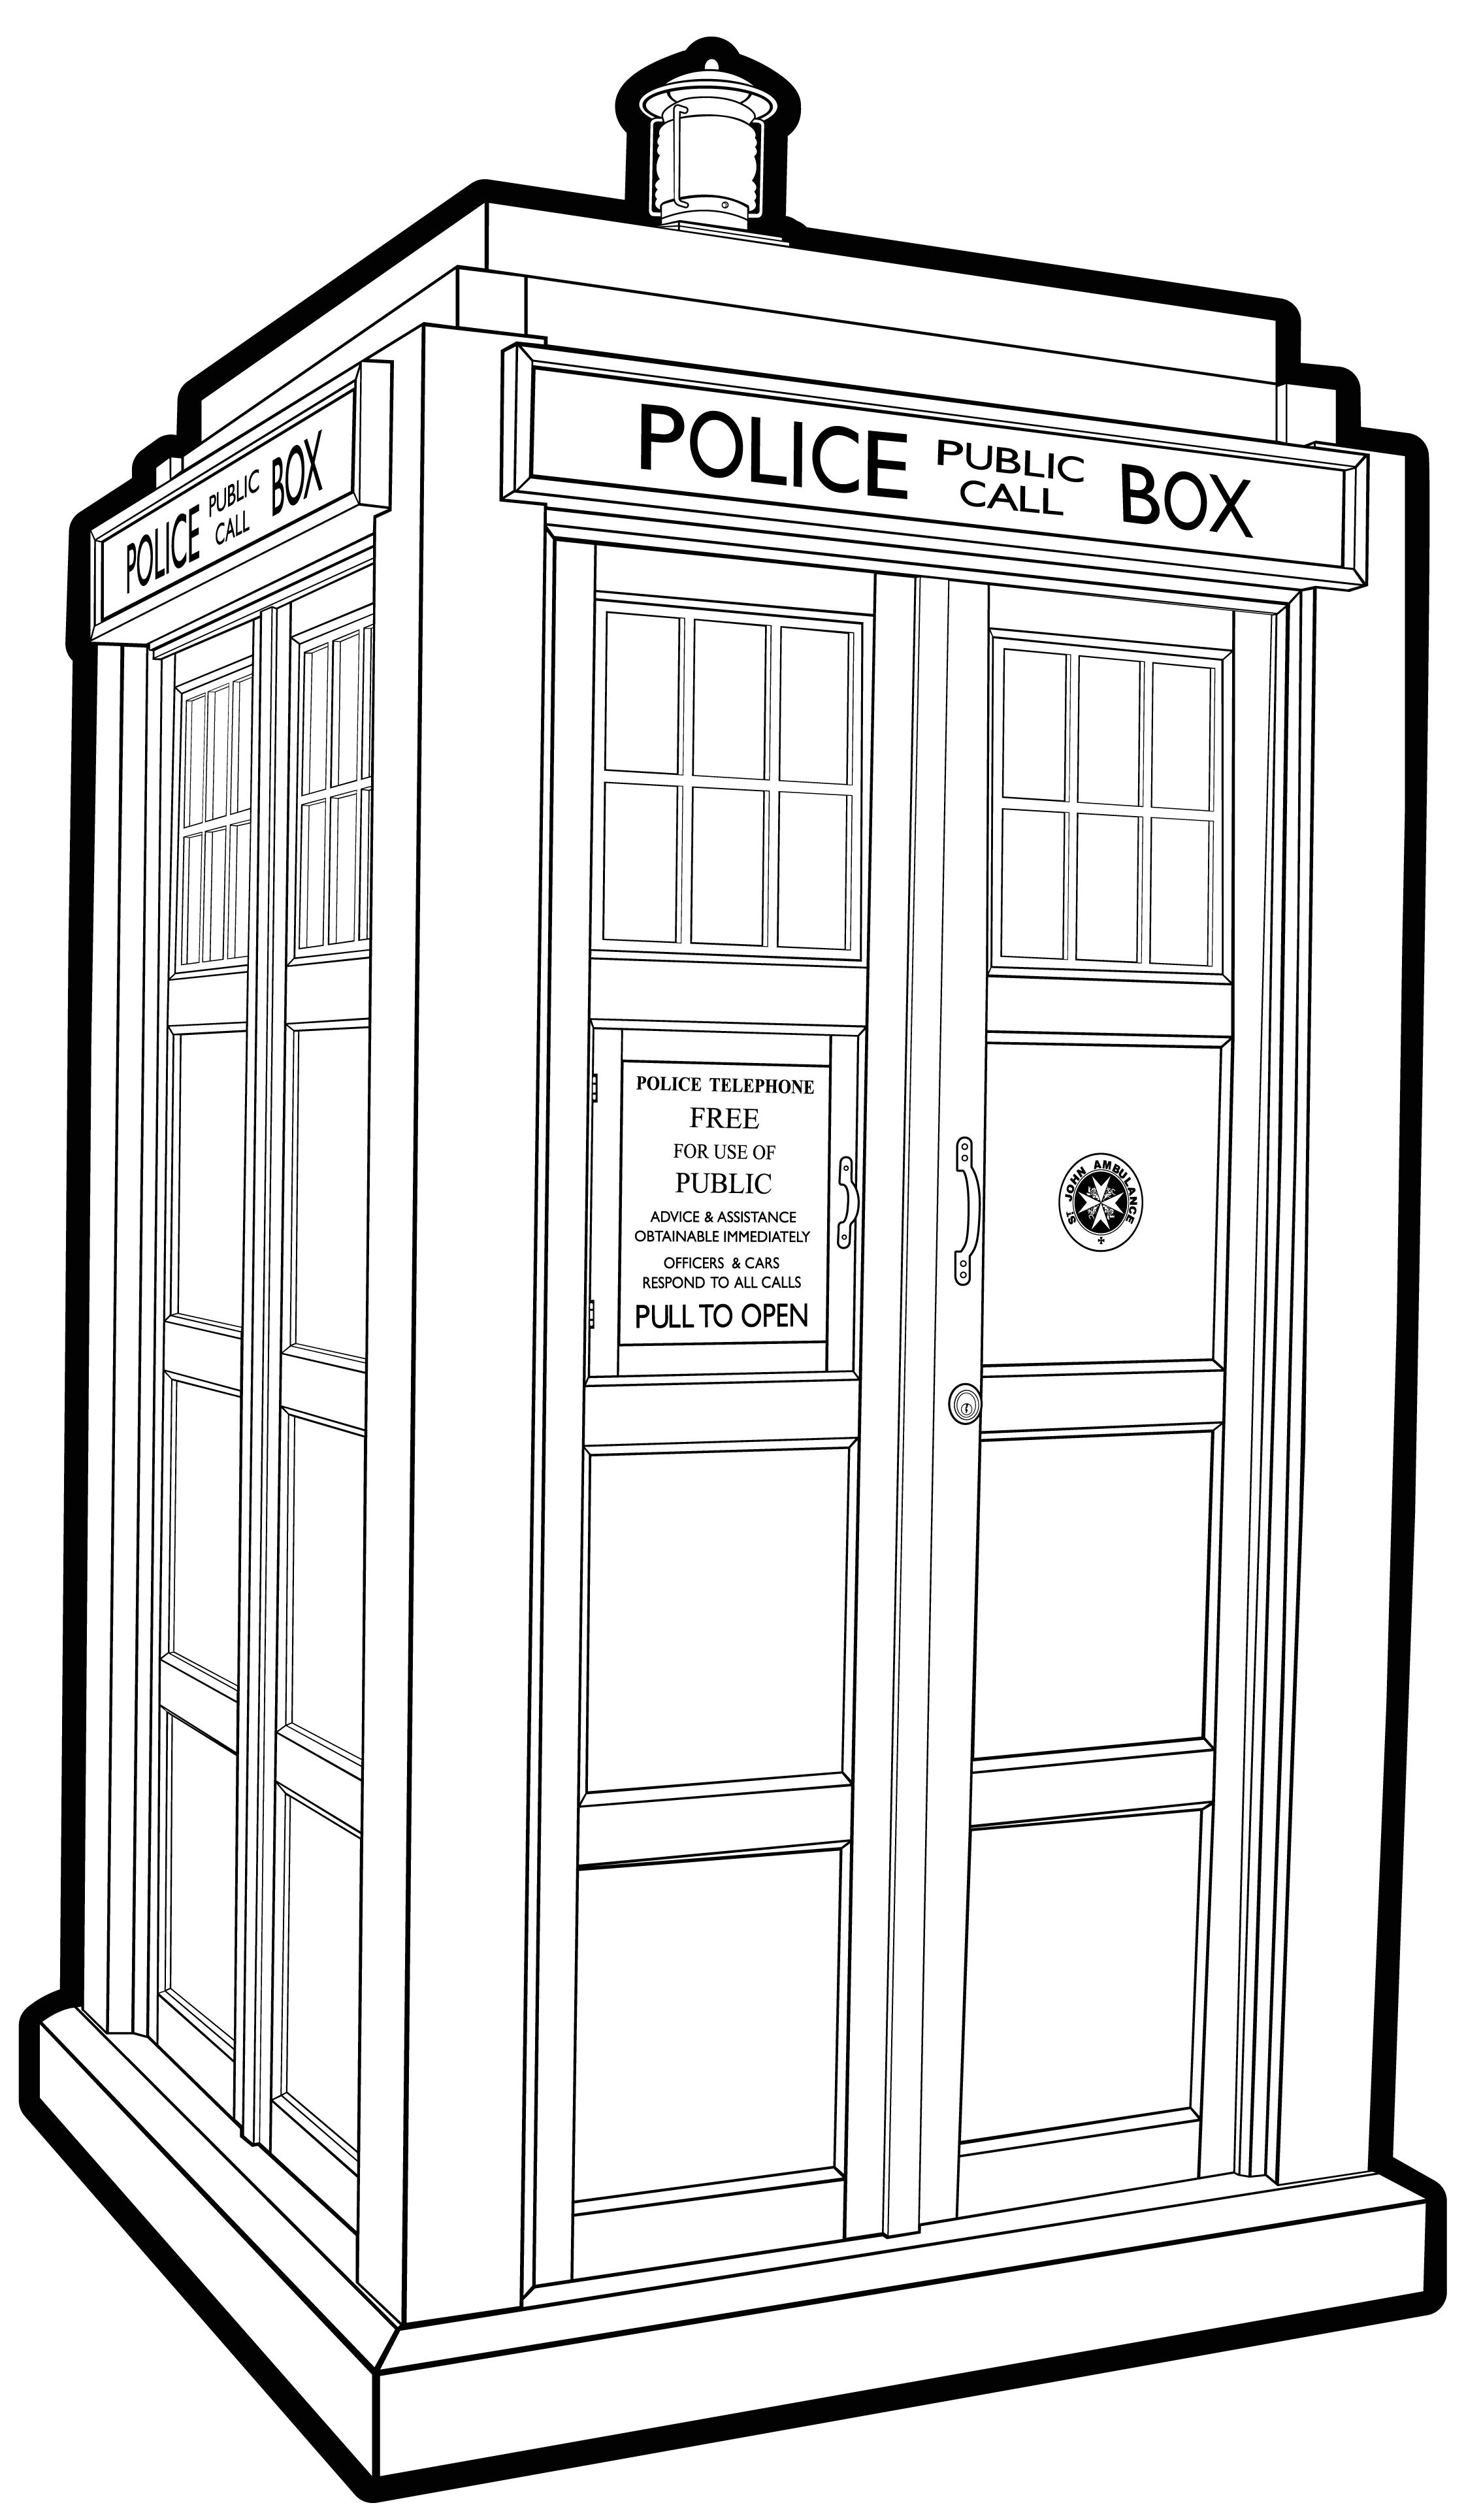 tardis pictures to print tardis dr who adult coloring page pictures print to tardis